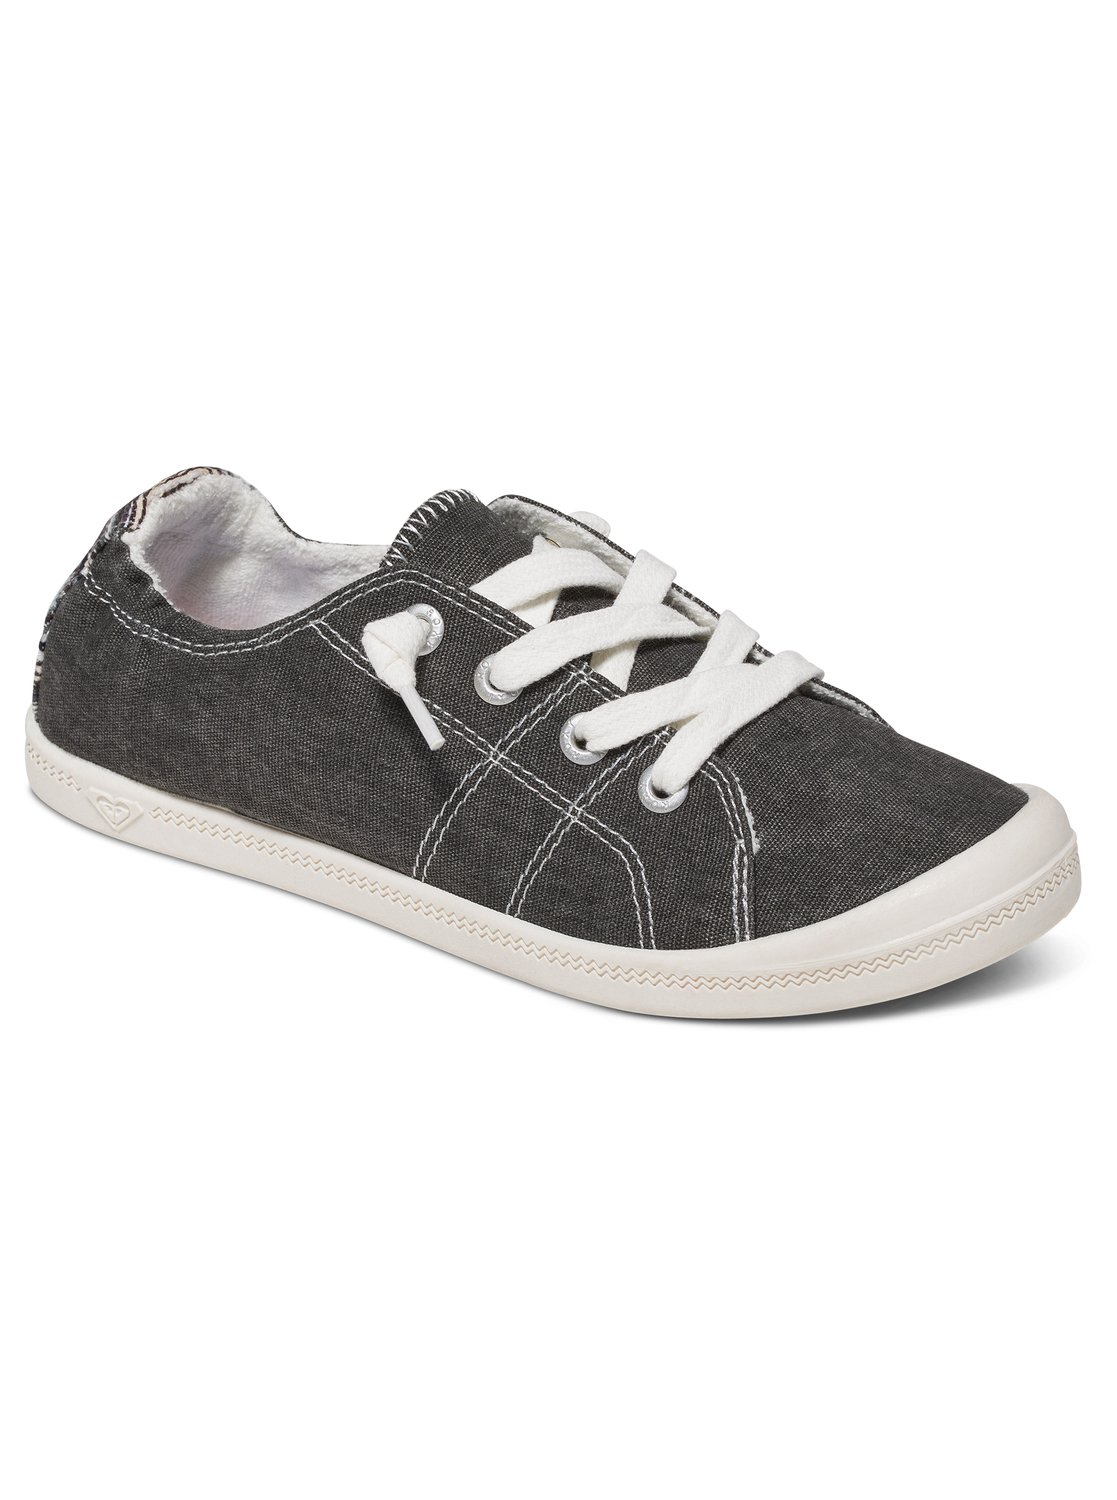 Roxy Shoes Rory Lace Up Shoes ARJ...